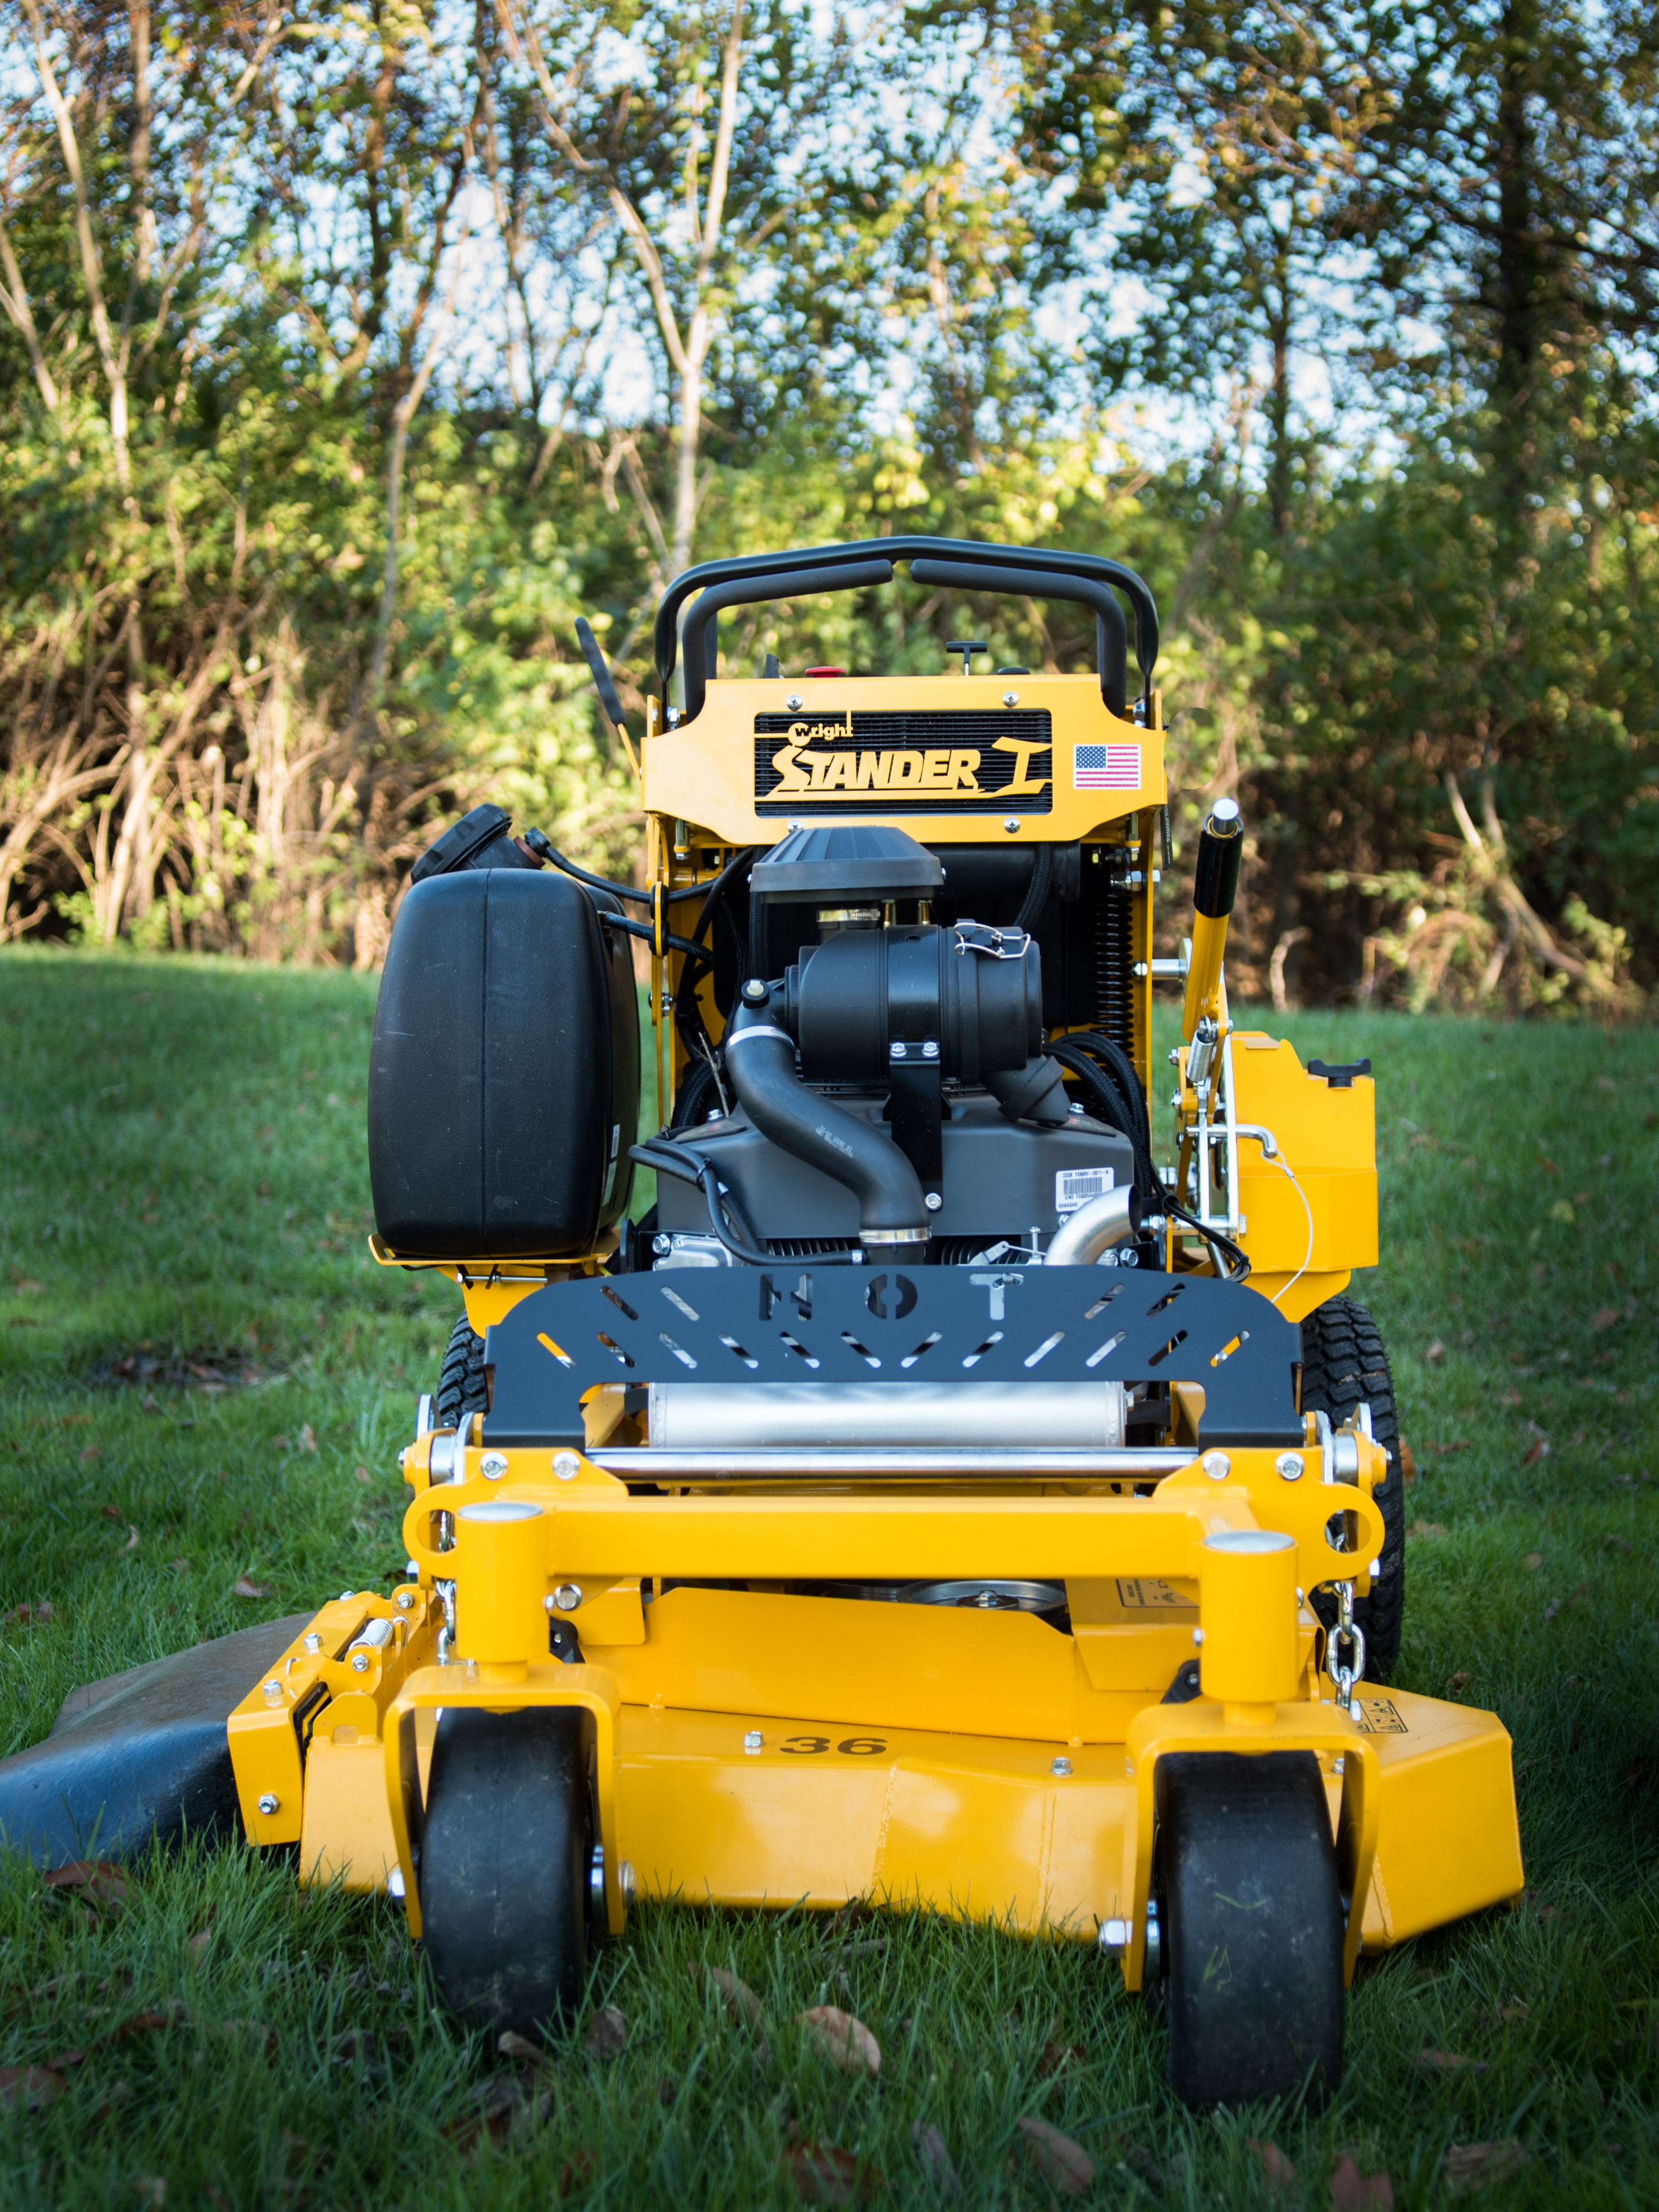 Stander I | Wright Commercial Stand-on Mowers